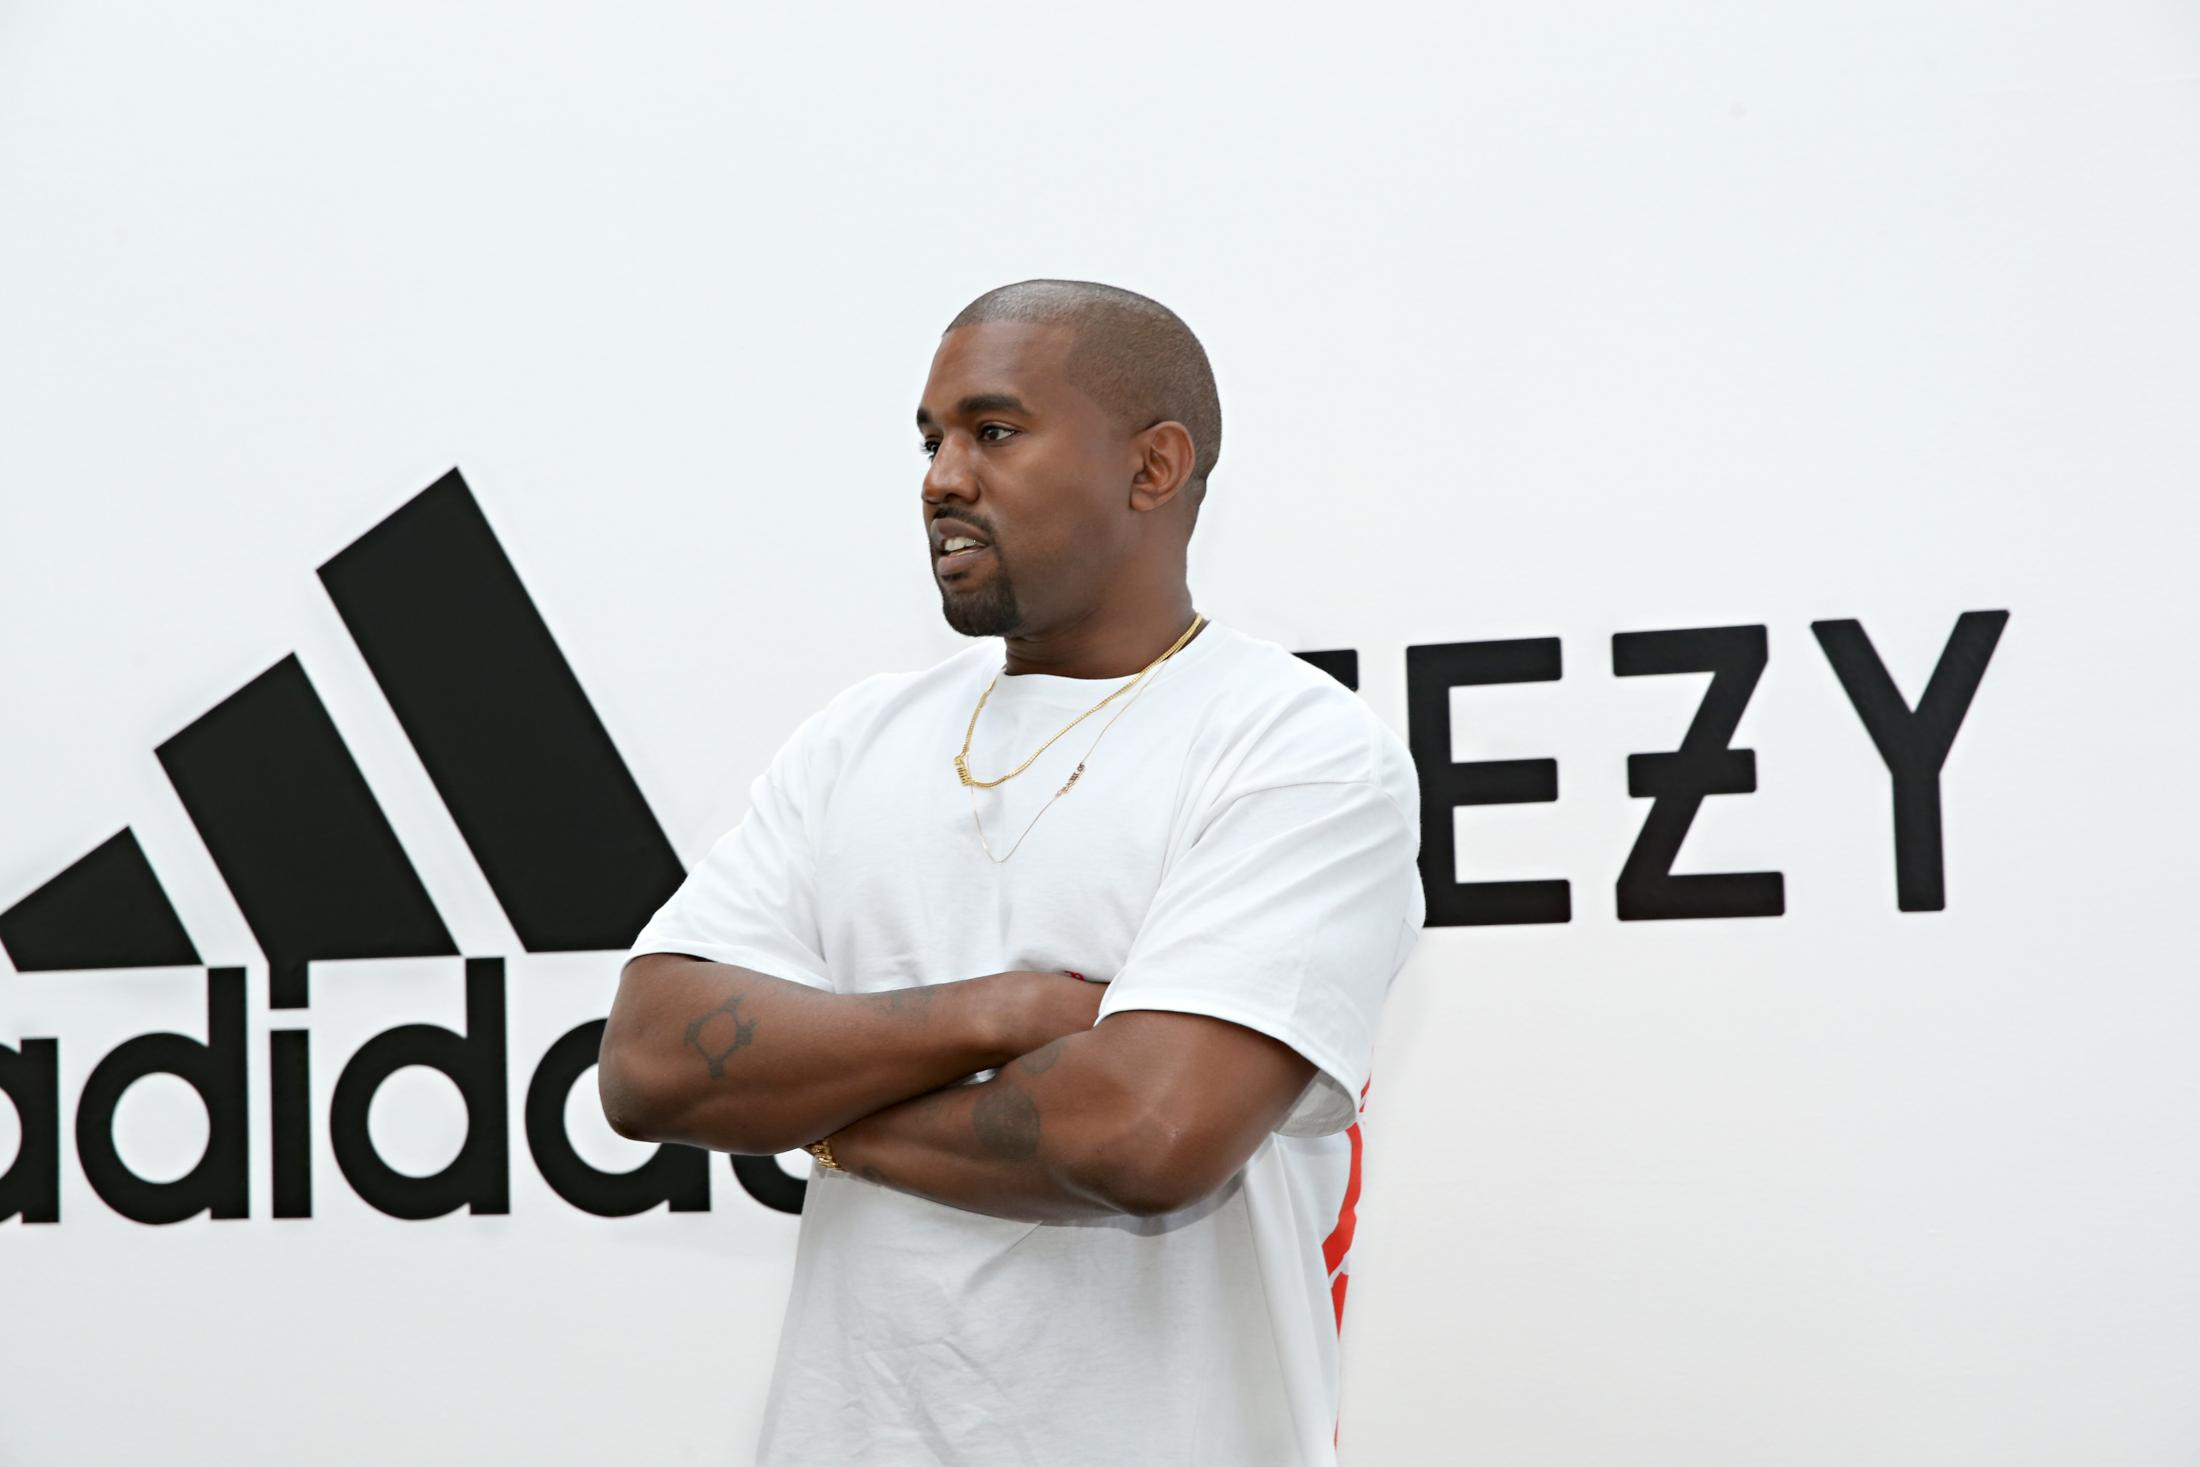 Thumbnail for adidas + Kanye West